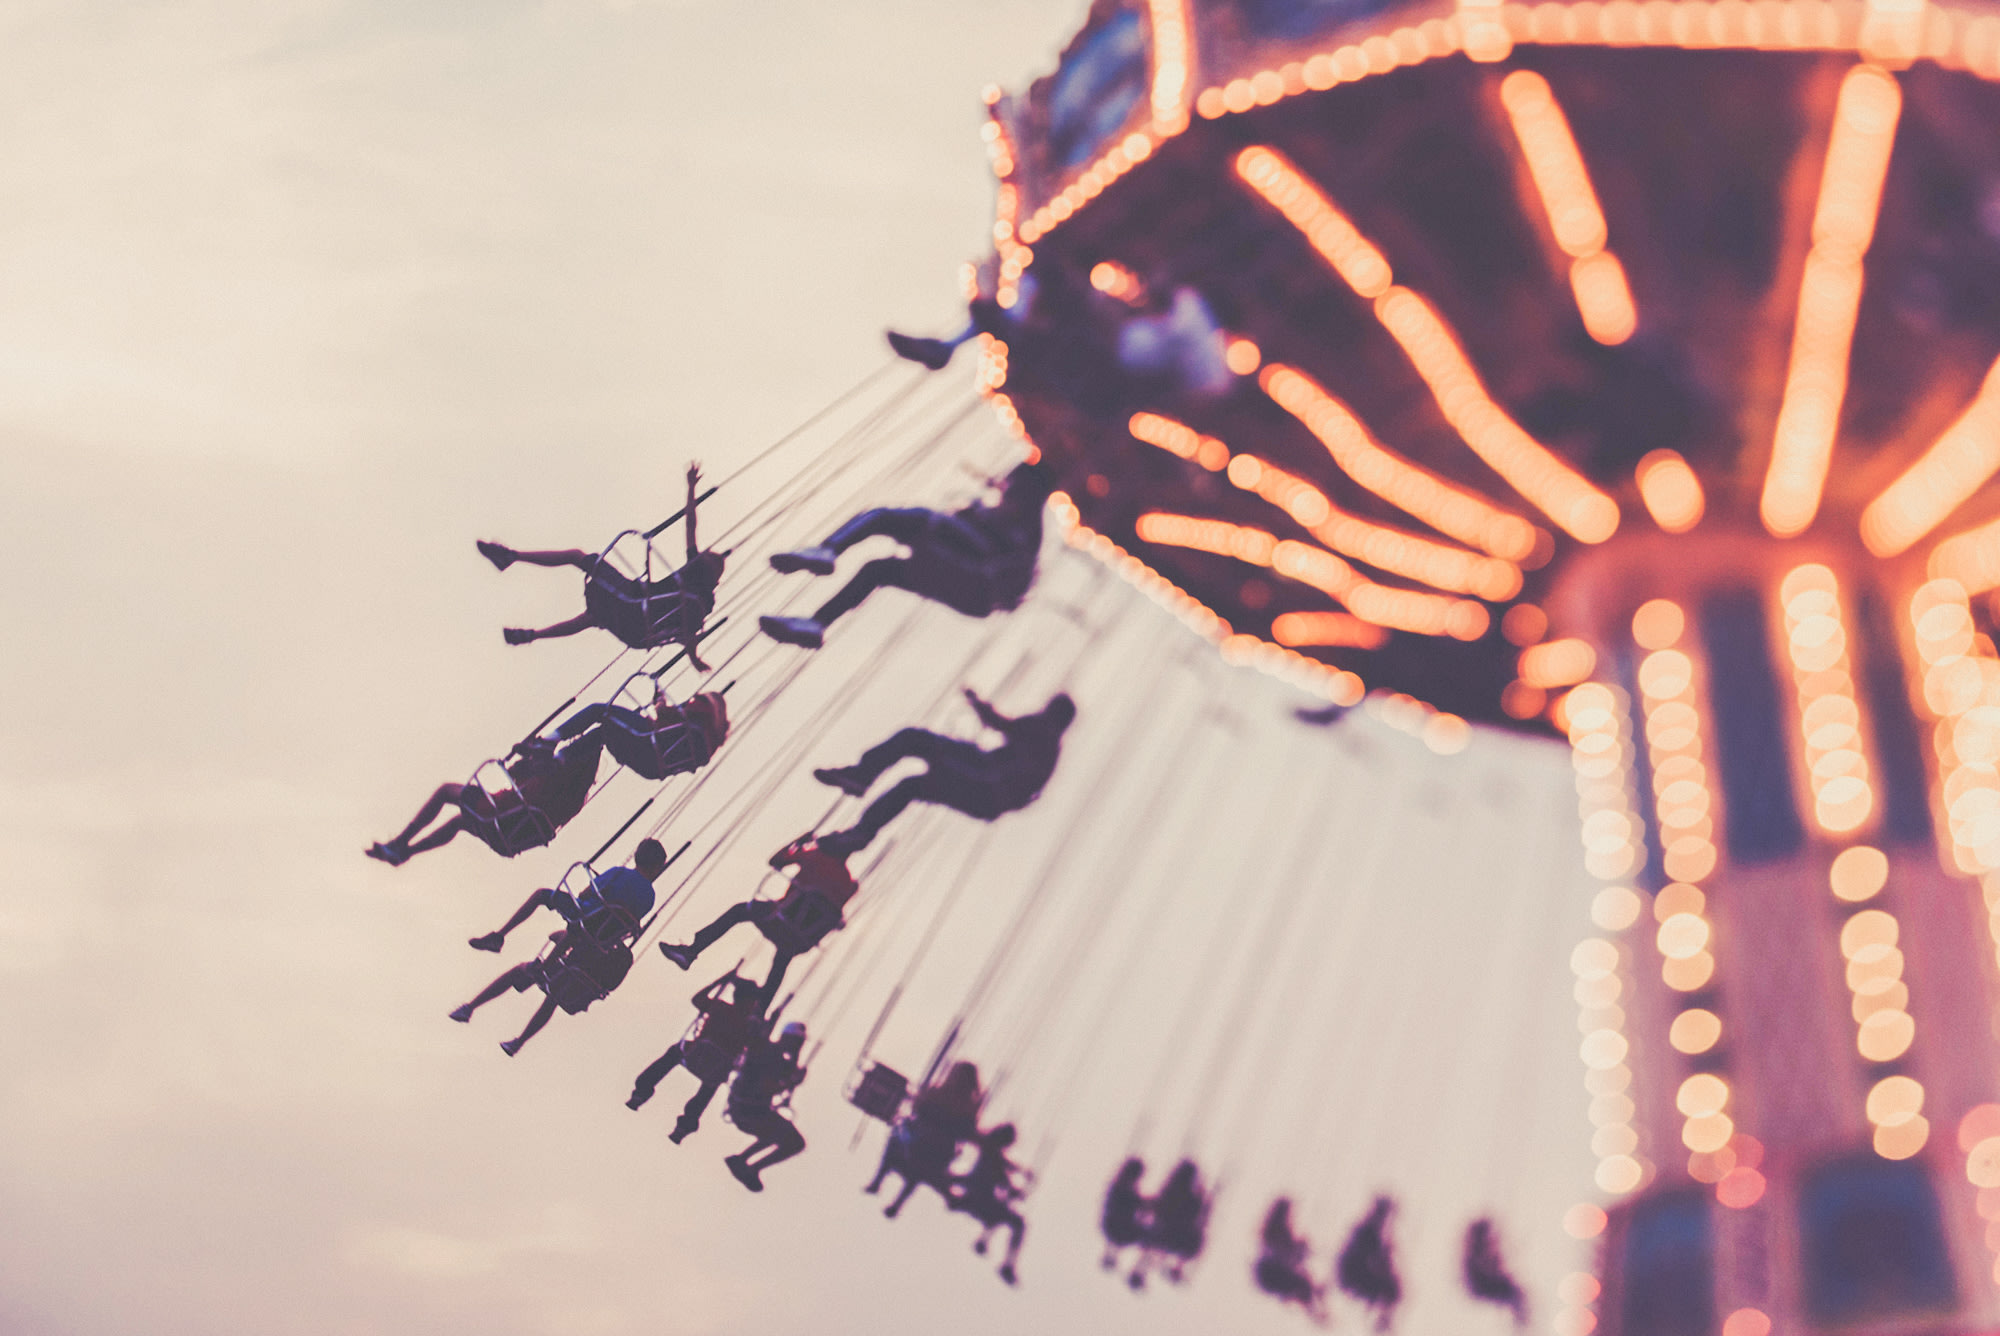 People hanging from a fairground ride.